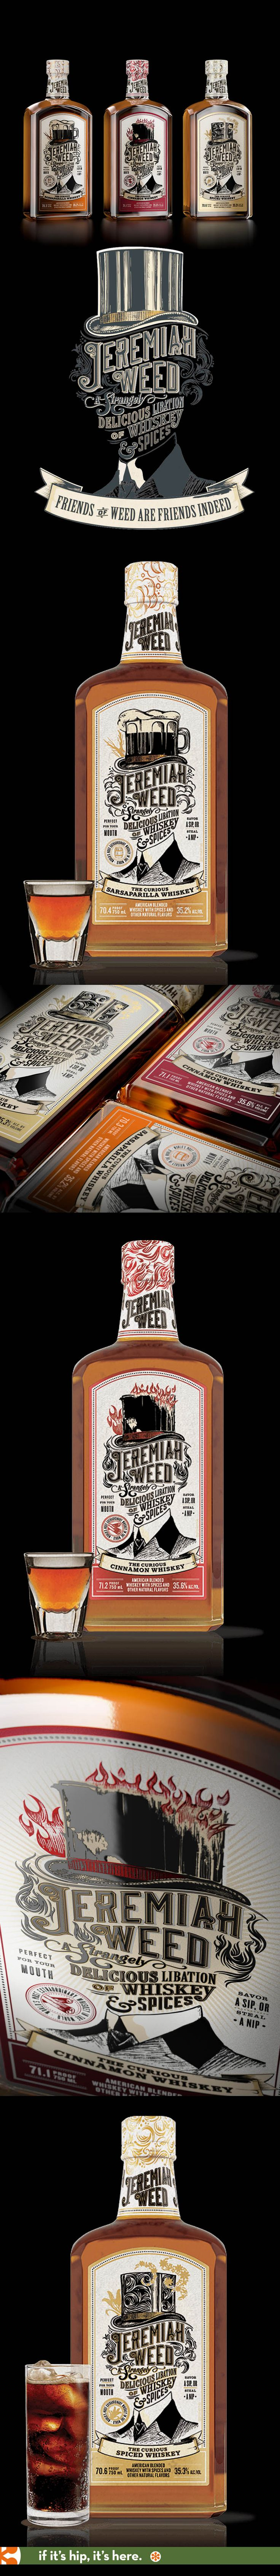 Force Majeur's beautiful design work for Jeremiah Weed Whiskies